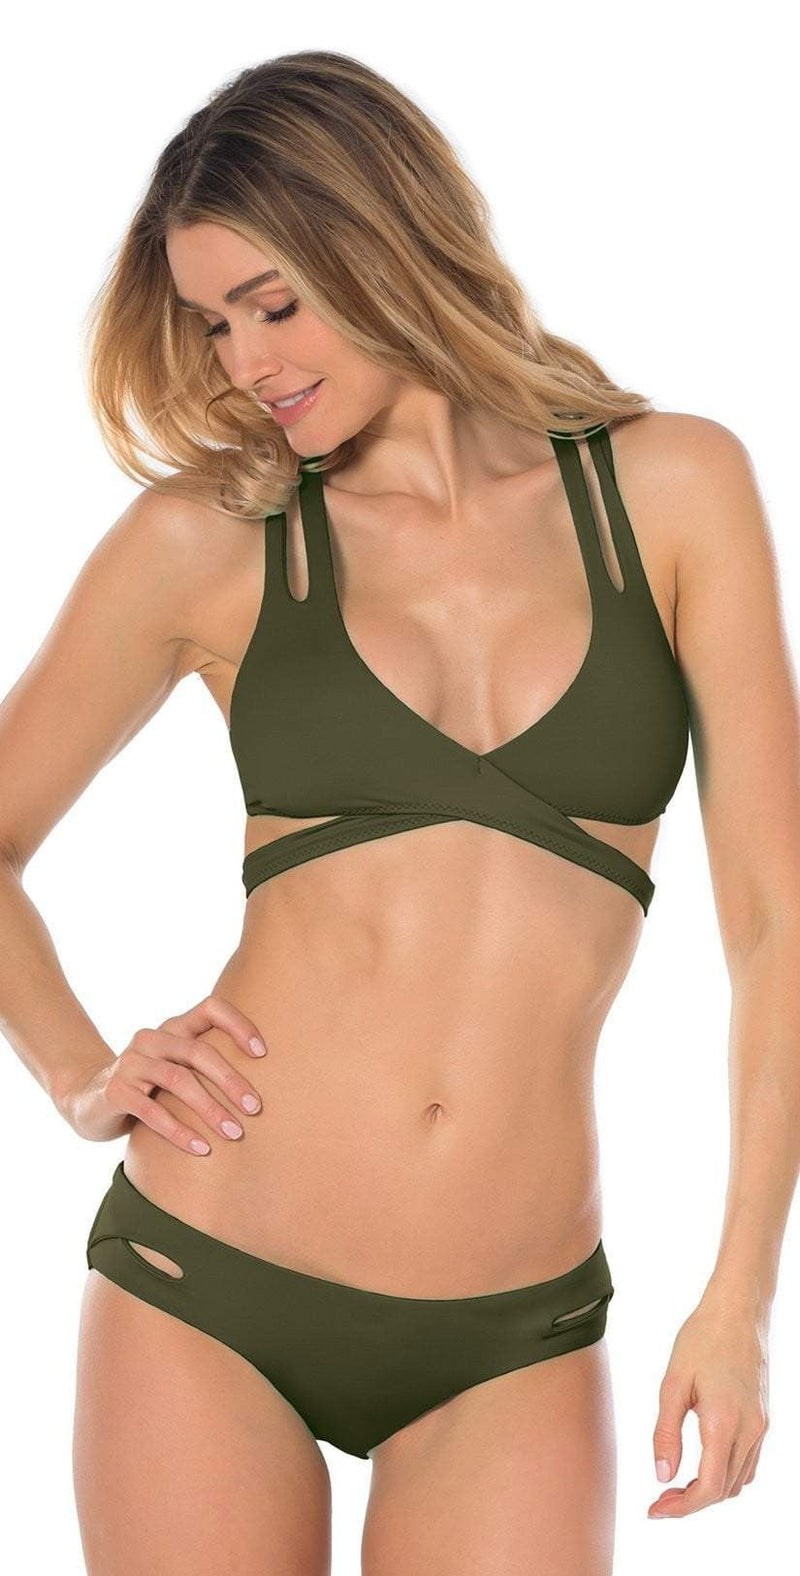 Becca Color Code Hipster Bottom In Bayleaf 854787-BAY: